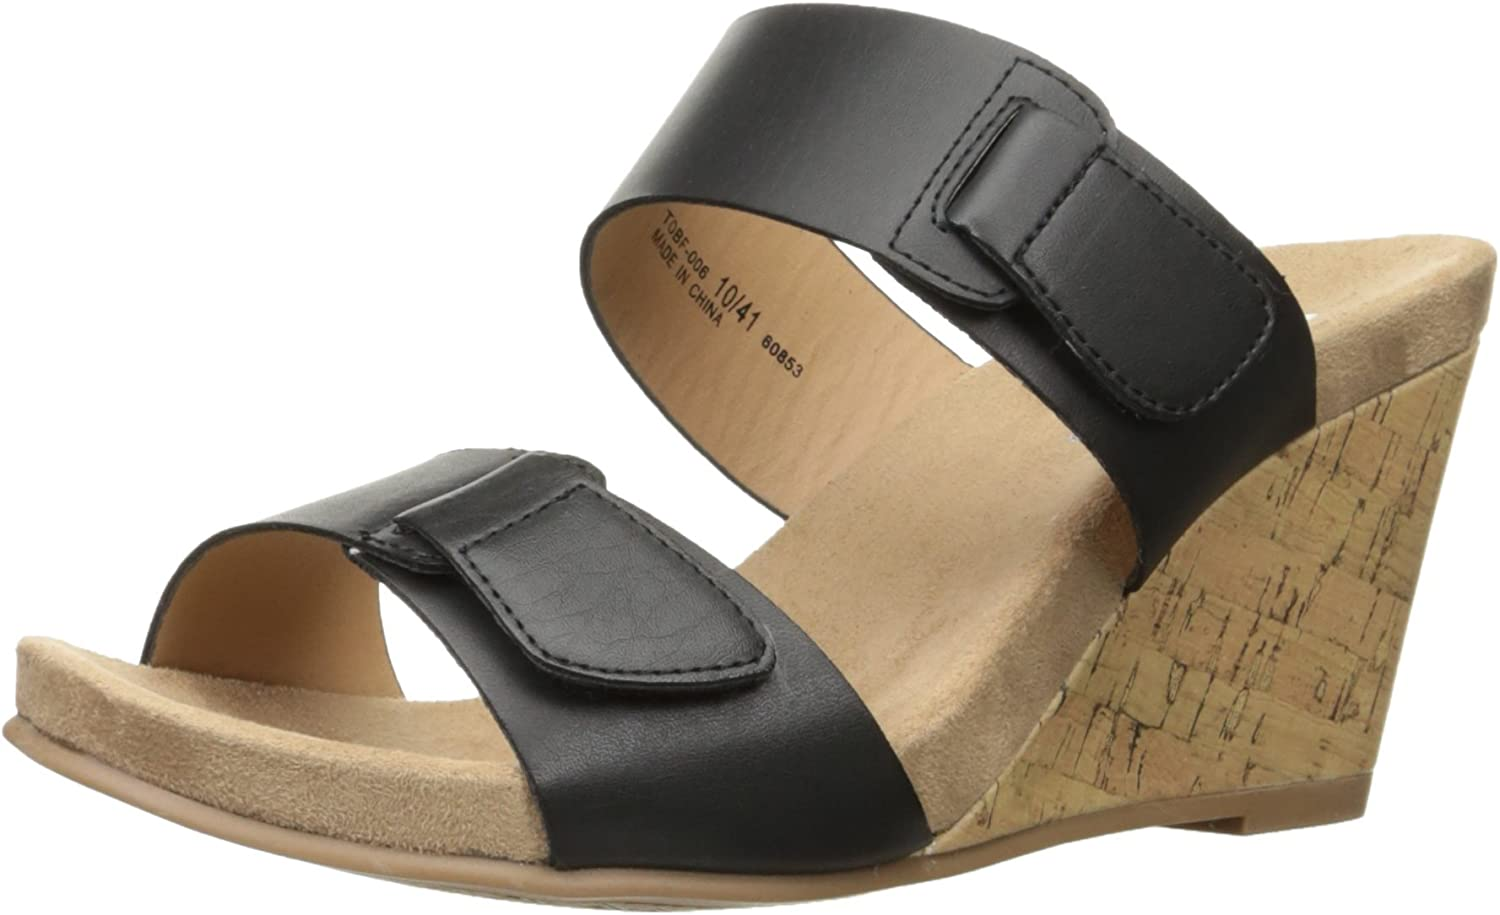 CL by Chinese Laundry Women's Team Player Wedge Sandal Slide